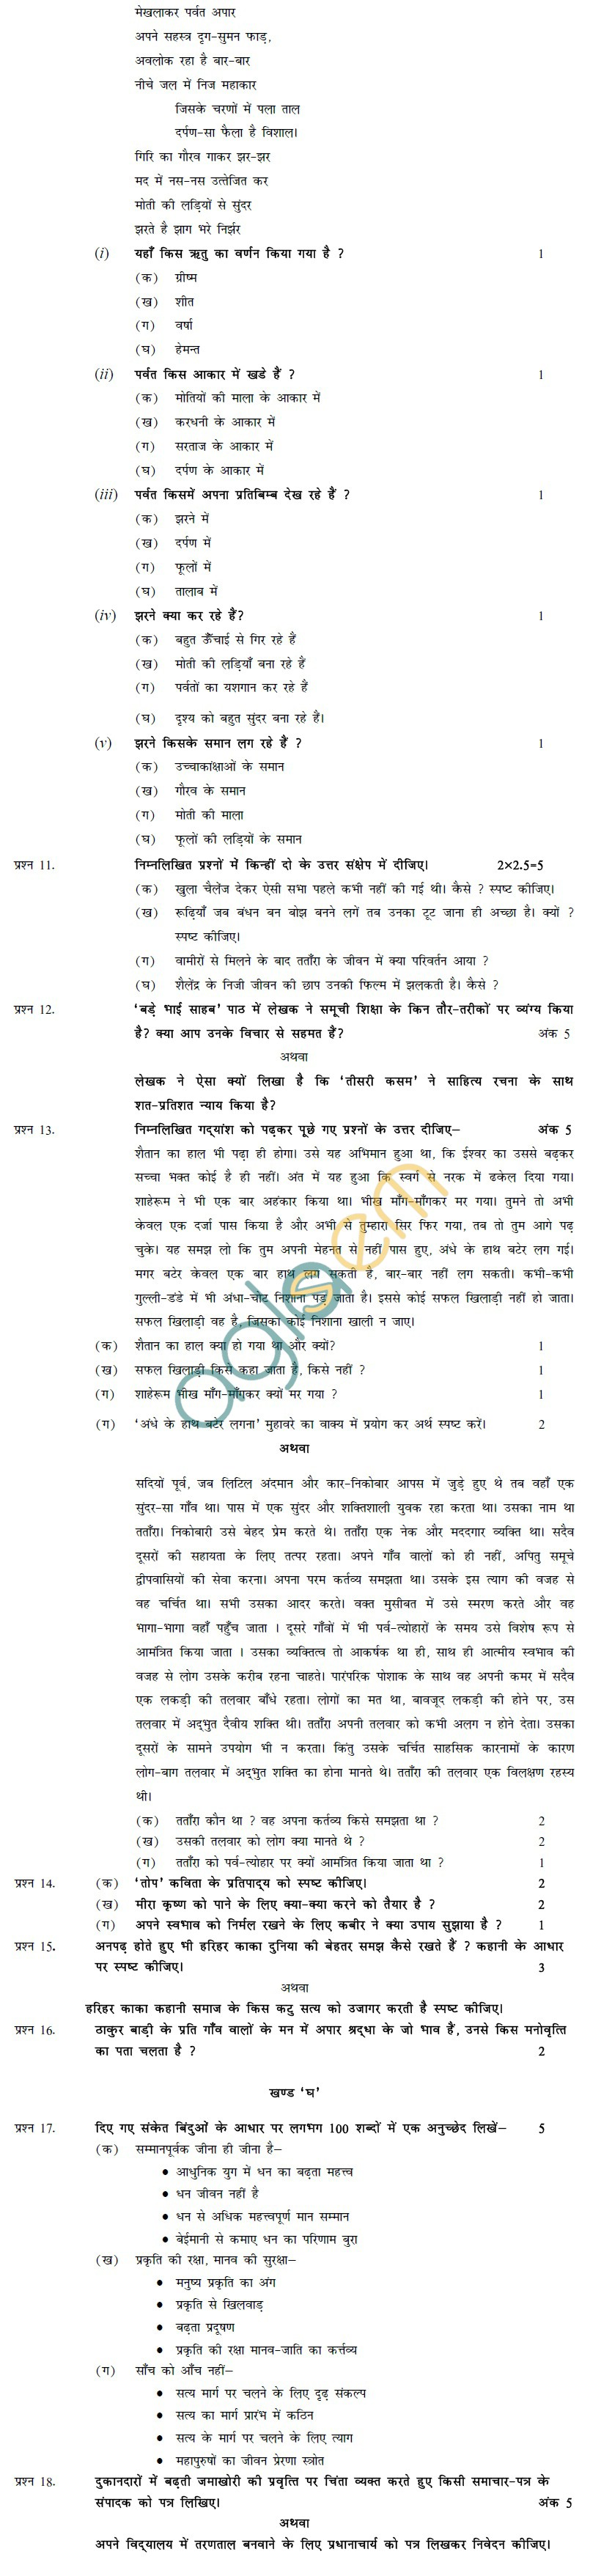 CBSE Board Exam 2013 Sample Papers (SA1) Class IX - Hindi B